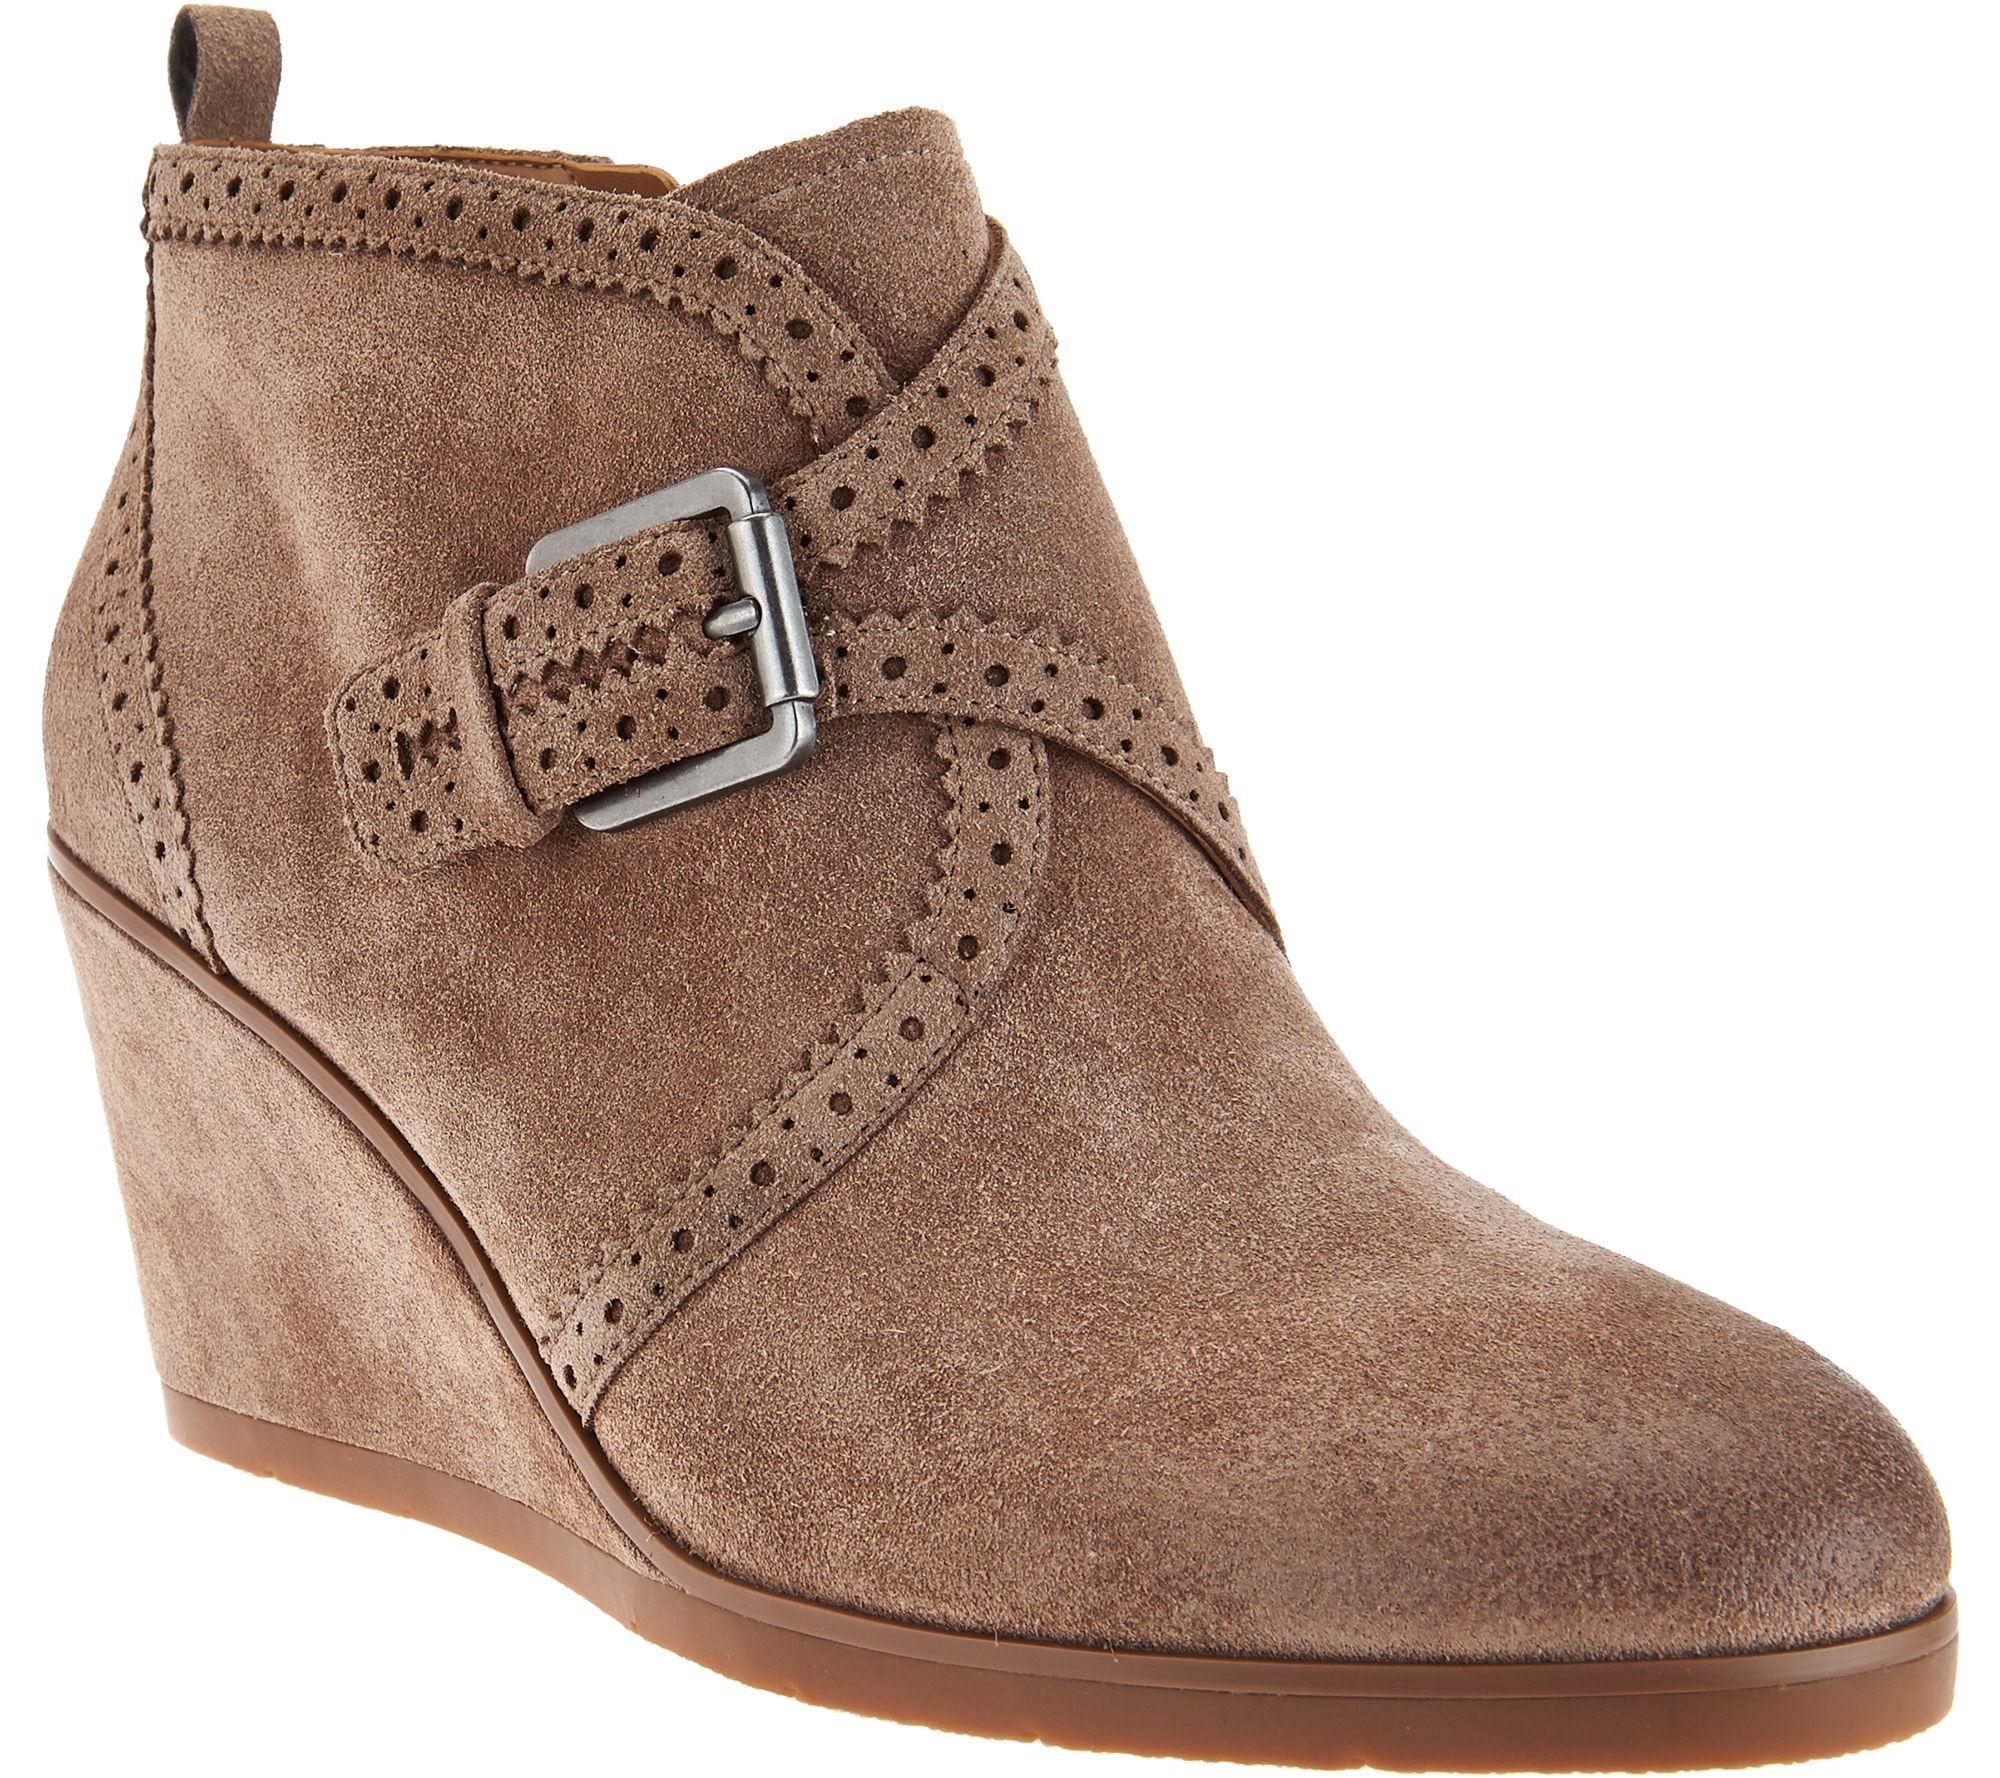 64ffbb1d3c33 Franco Sarto Suede Monk Strap Wedge Boots - Arielle - Page 1 — QVC.com